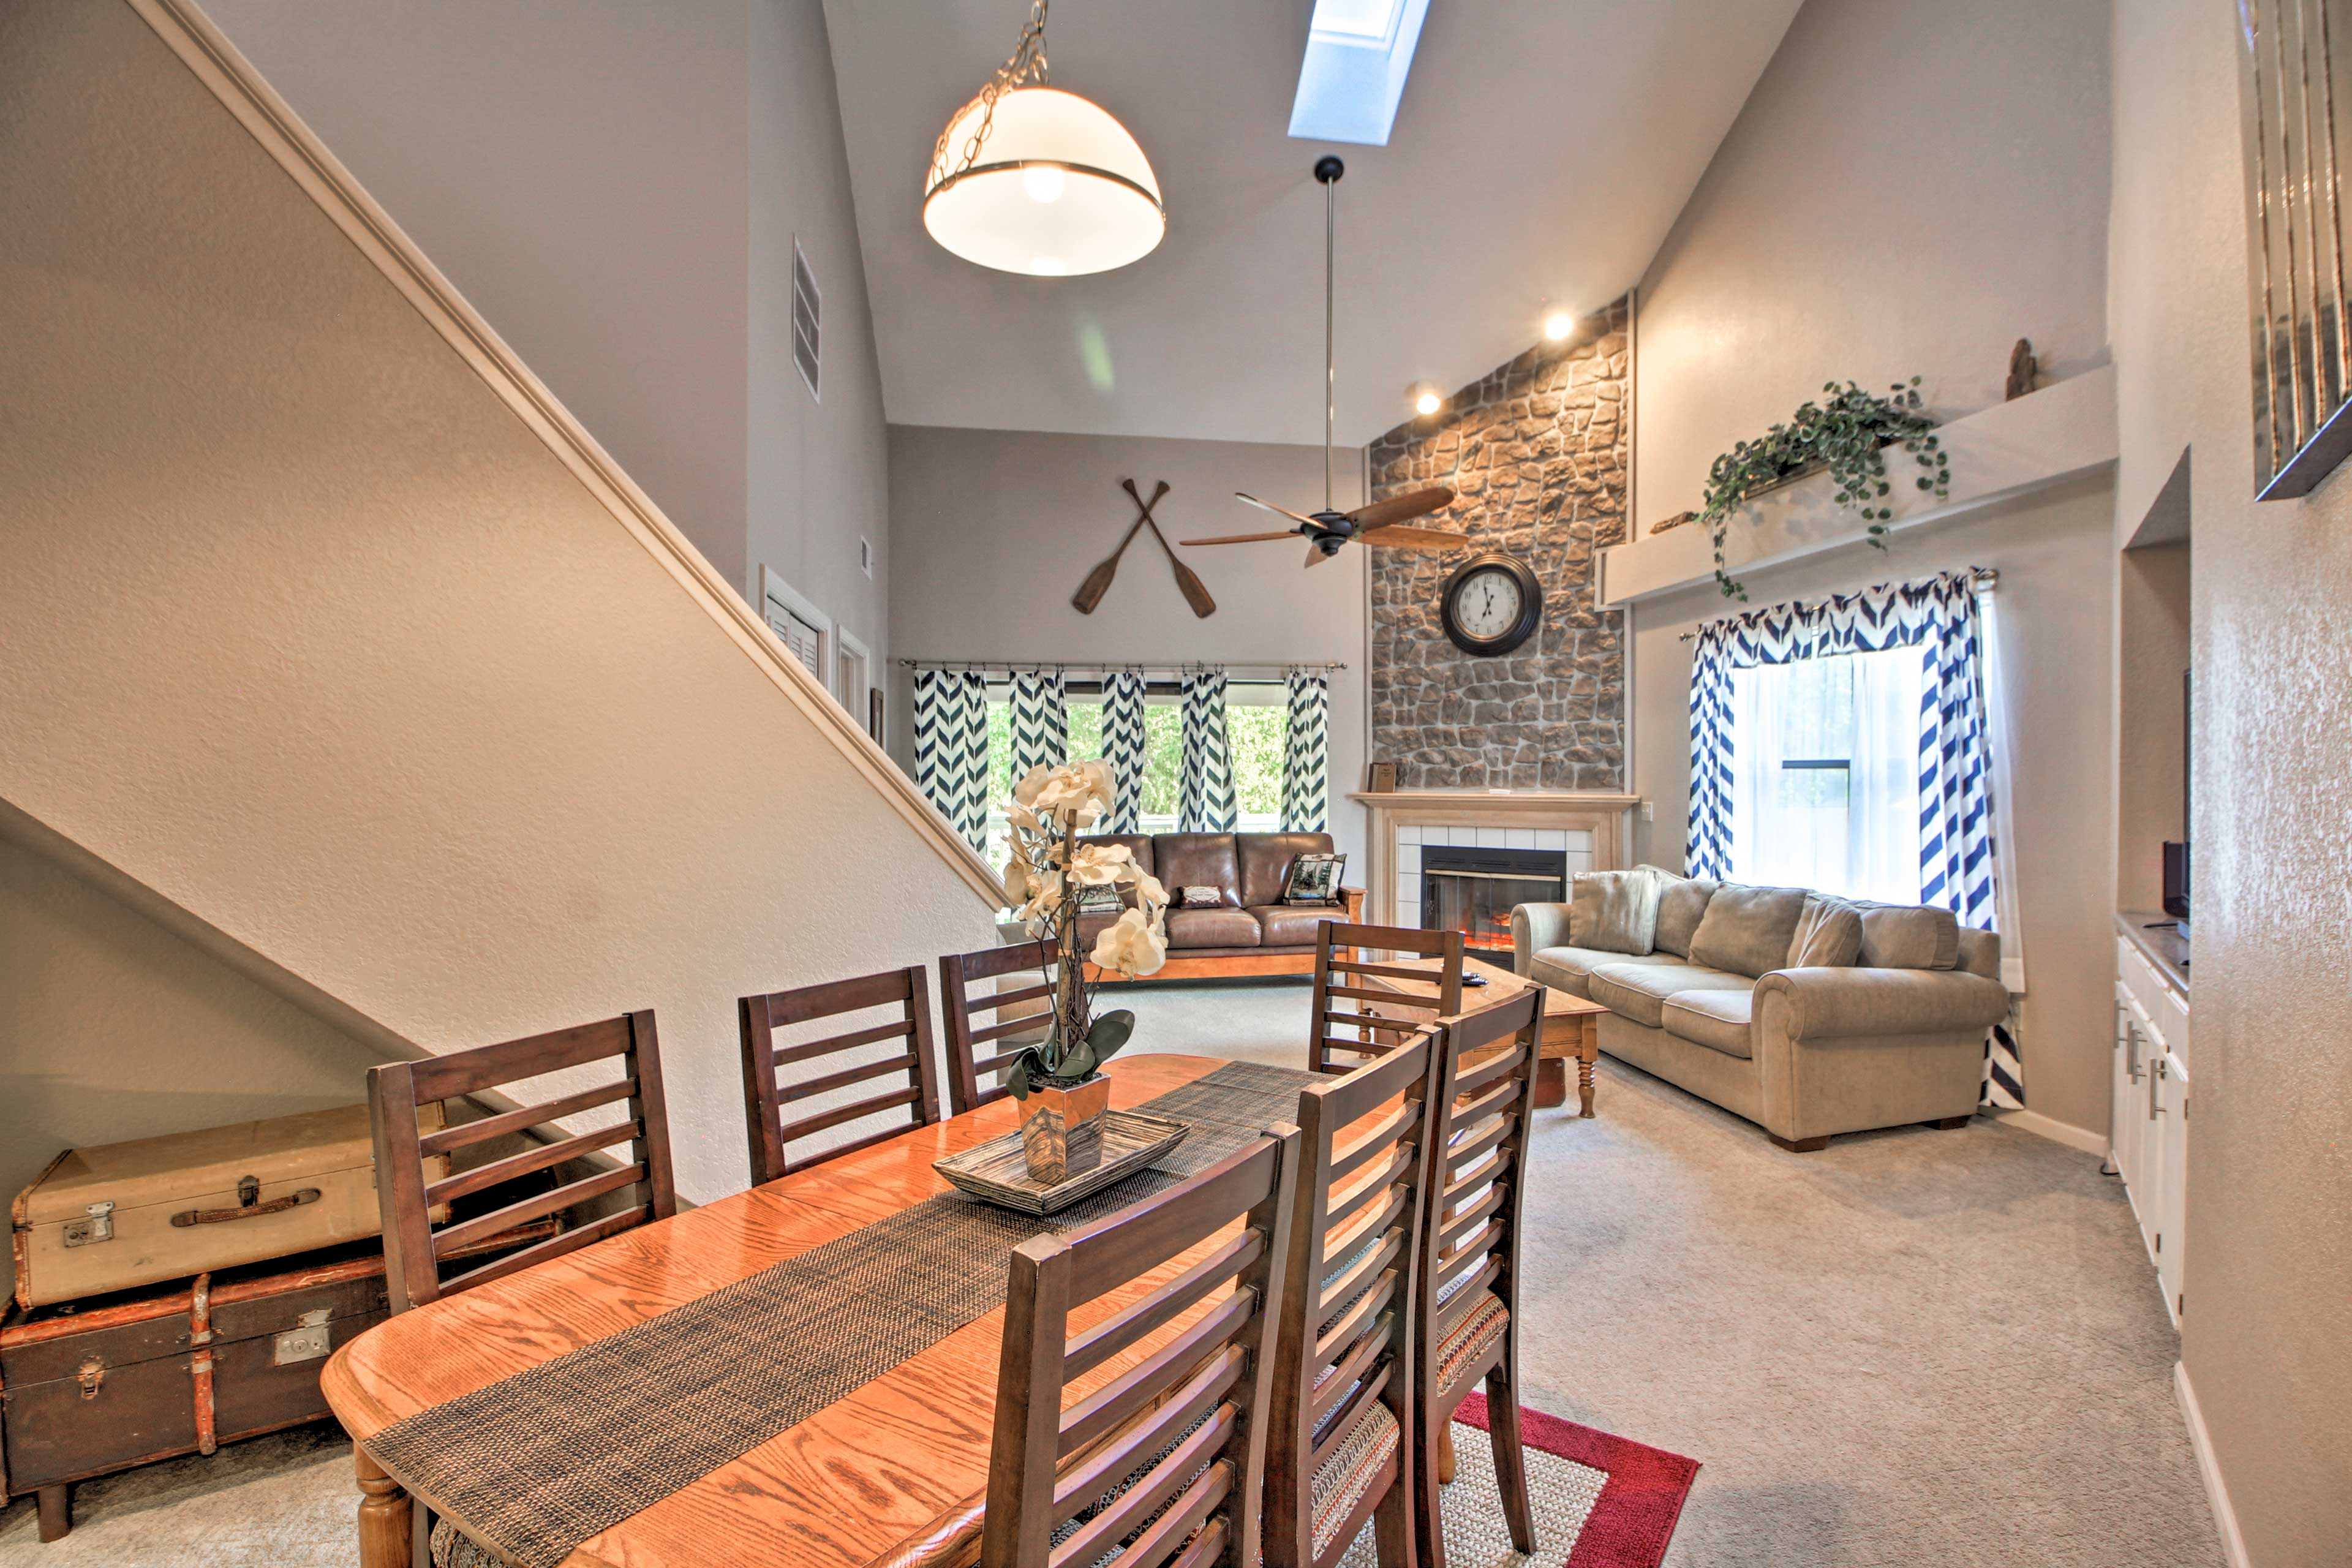 Branson Vacation Rental Condo | 4BR | 3BA | 2,200 Sq Ft | Stairs Required